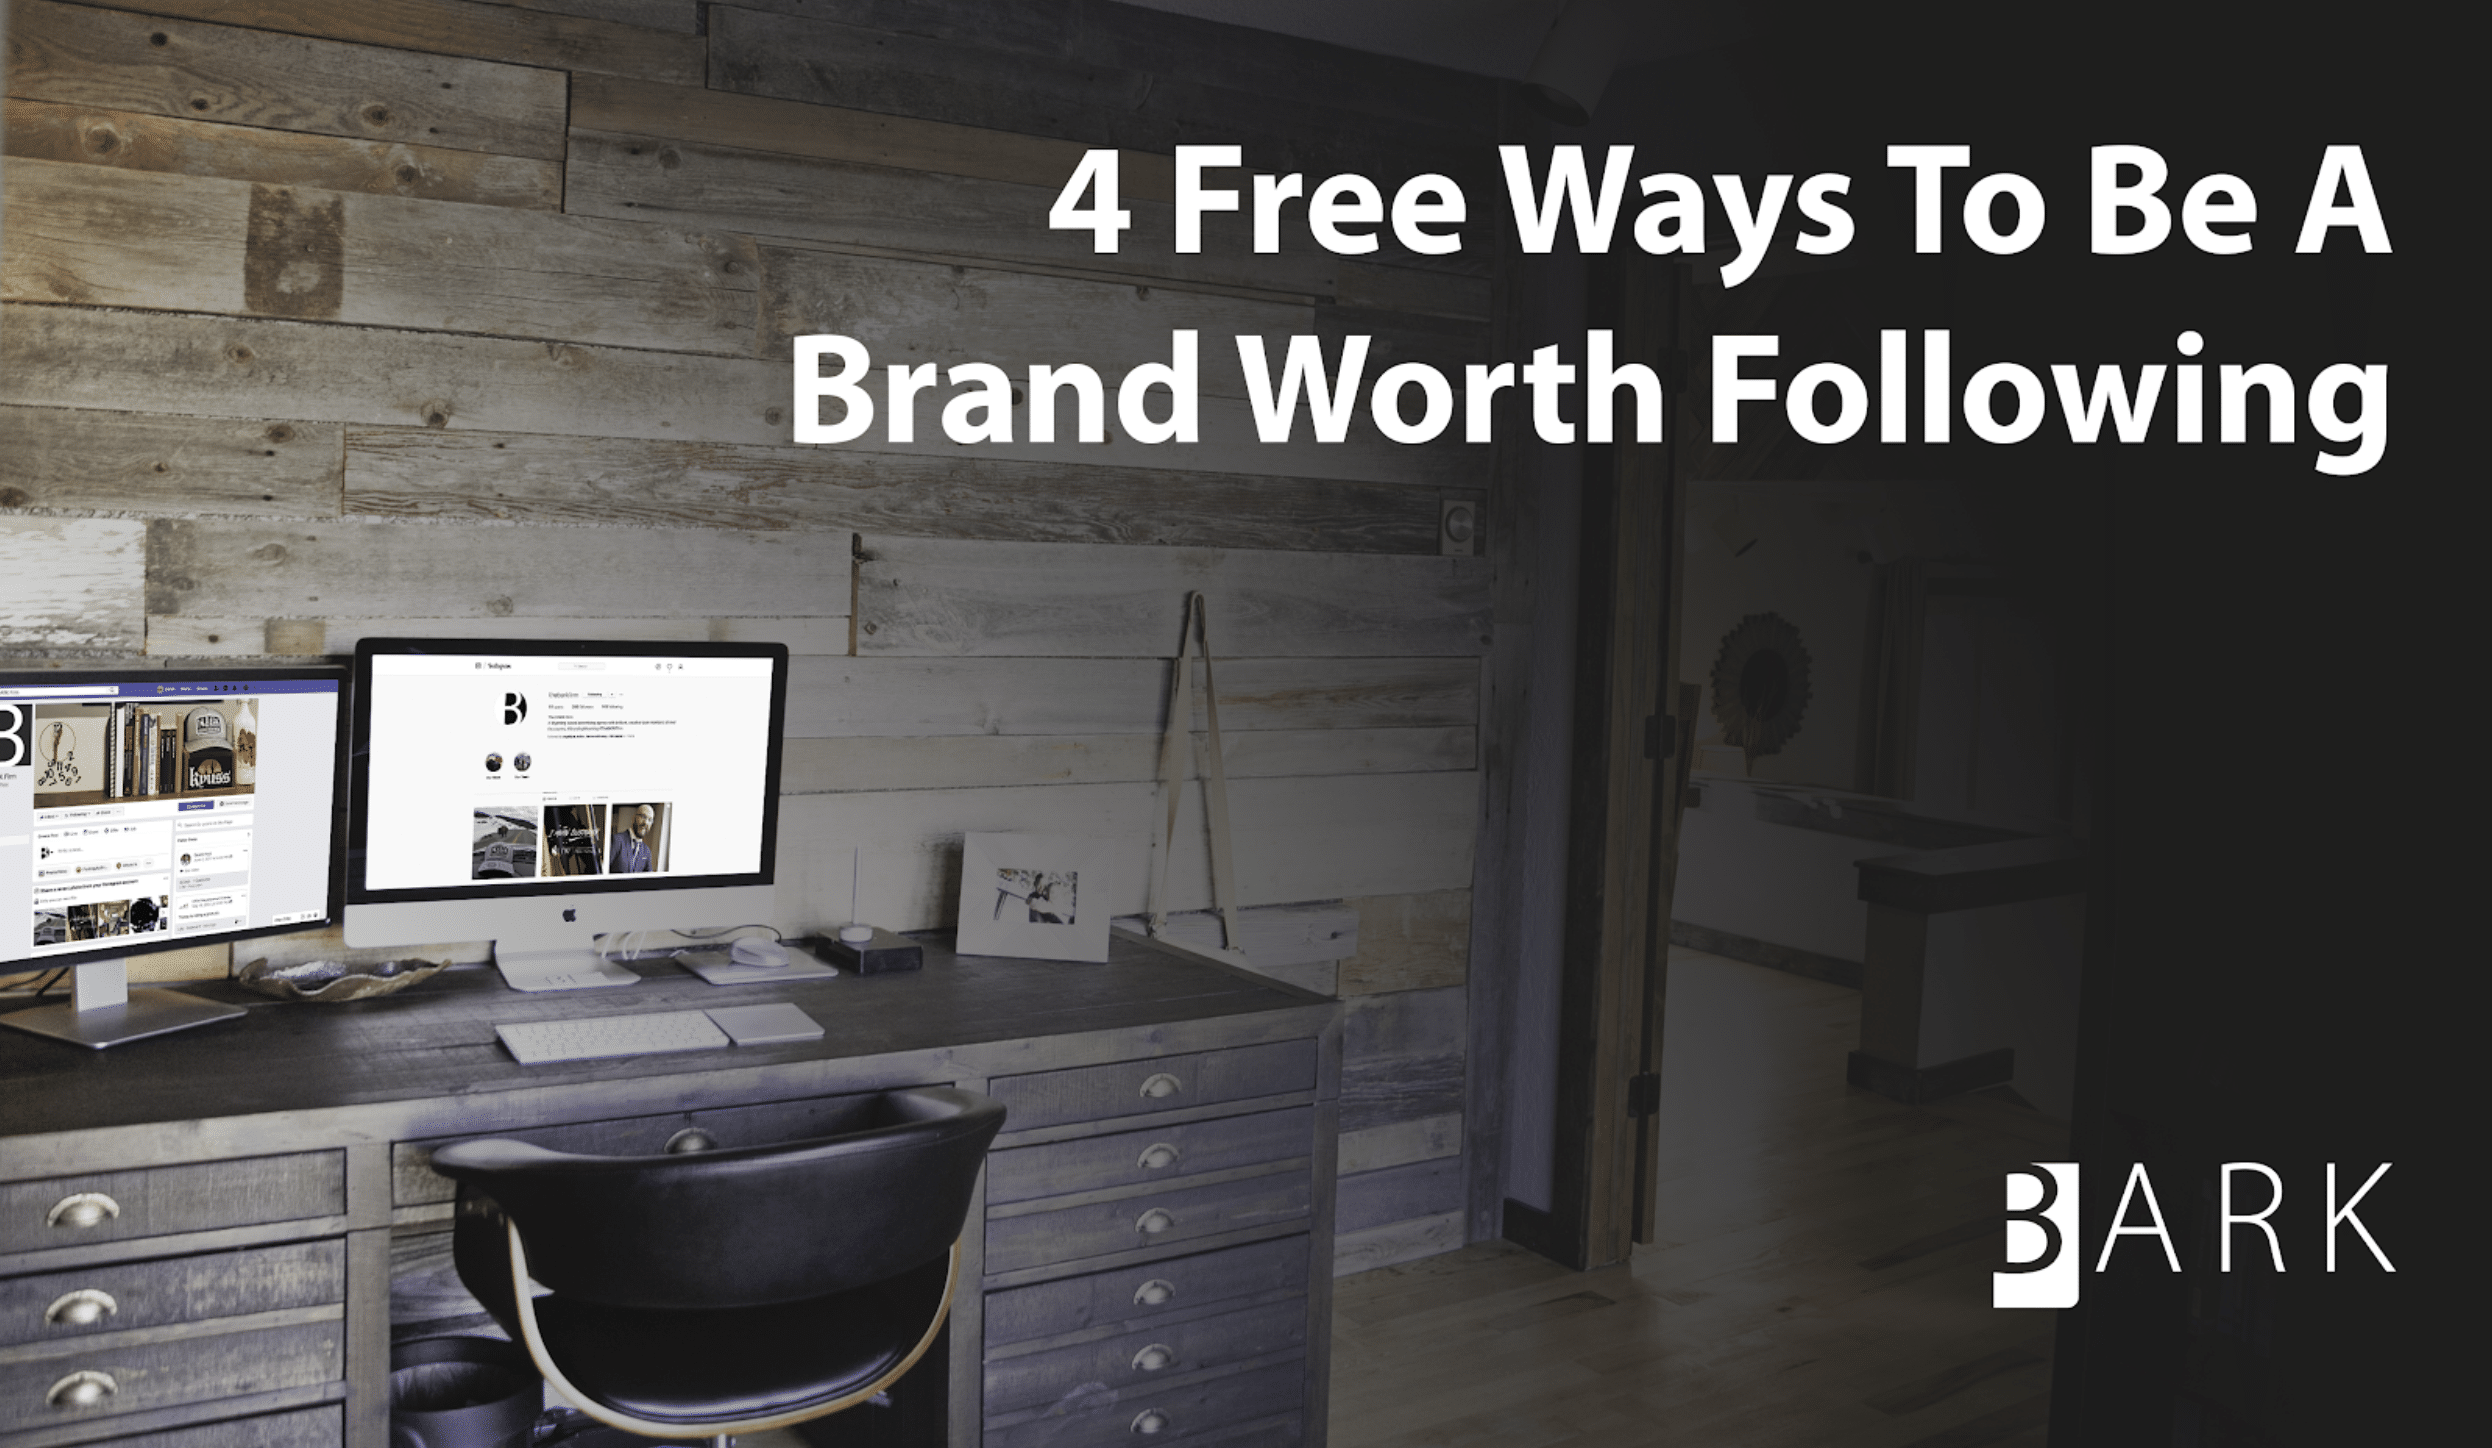 Real Advice On Social Media Strategy From The BARK Firm (And It's Free)